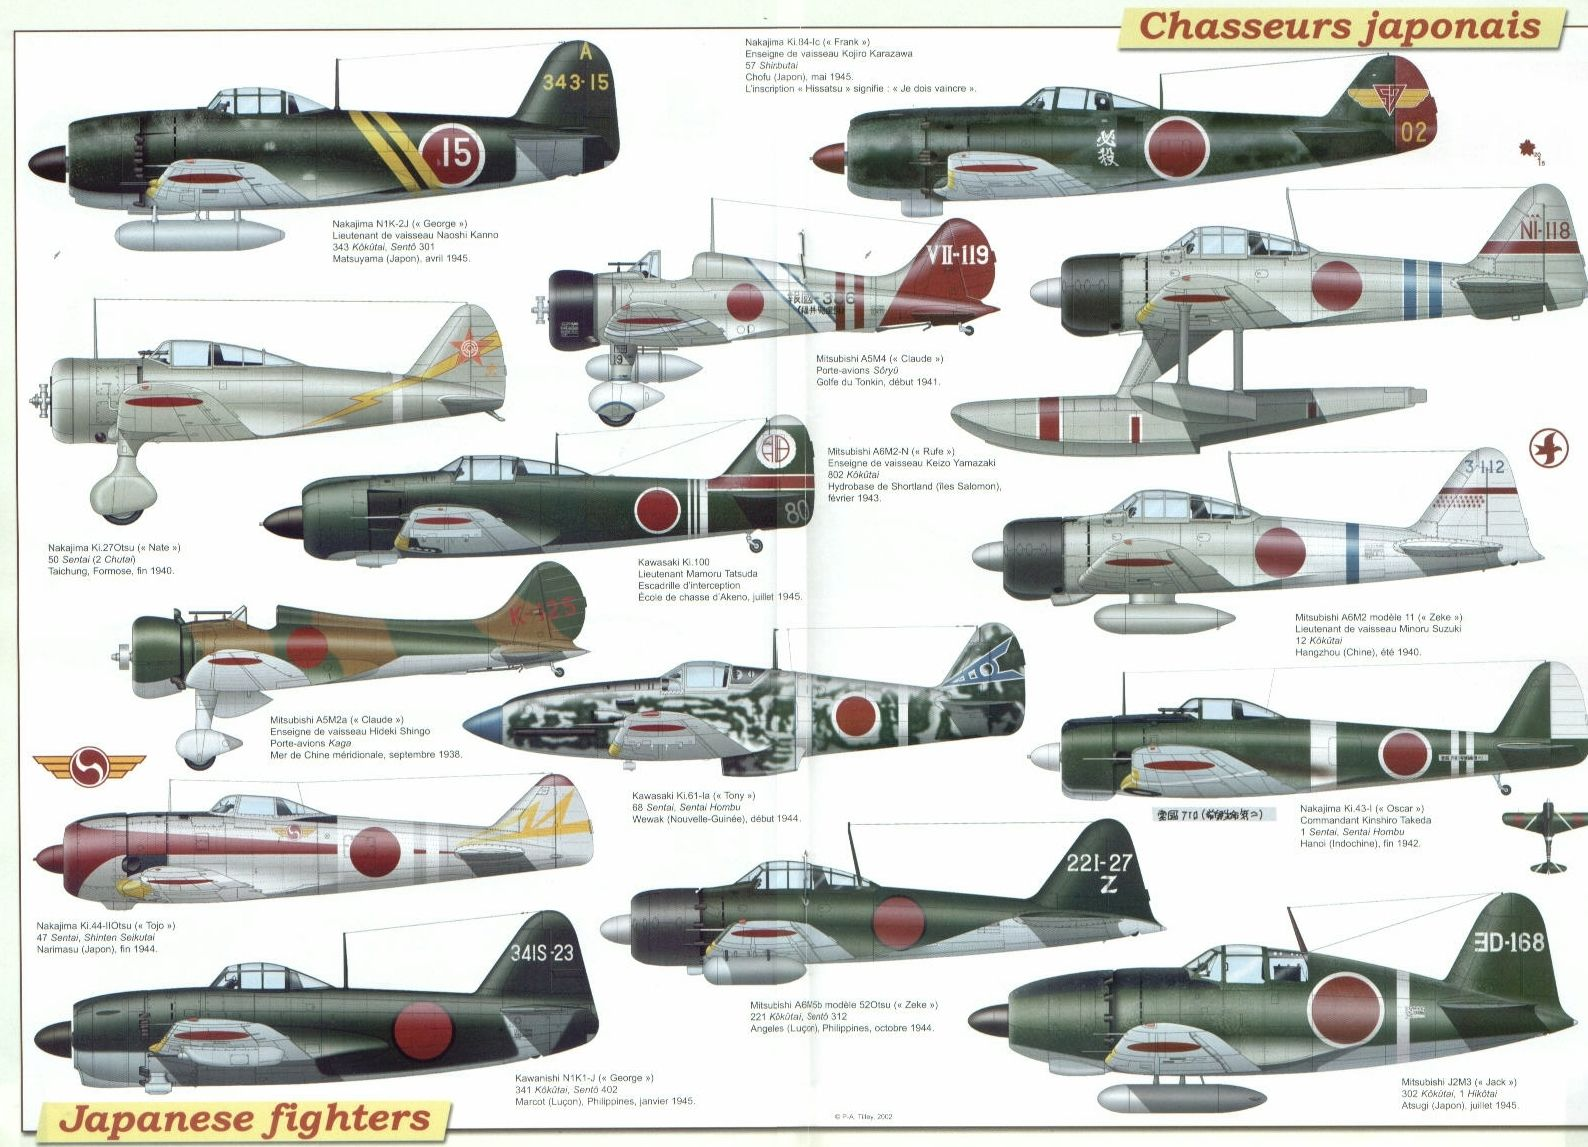 ww2 plane blueprints with 316377942544645508 on Aircraft moreover Horten Ho 229 V3 as well 11 as well Ta 152 H 0 In Nasm In Washington D C moreover Ww2japan.